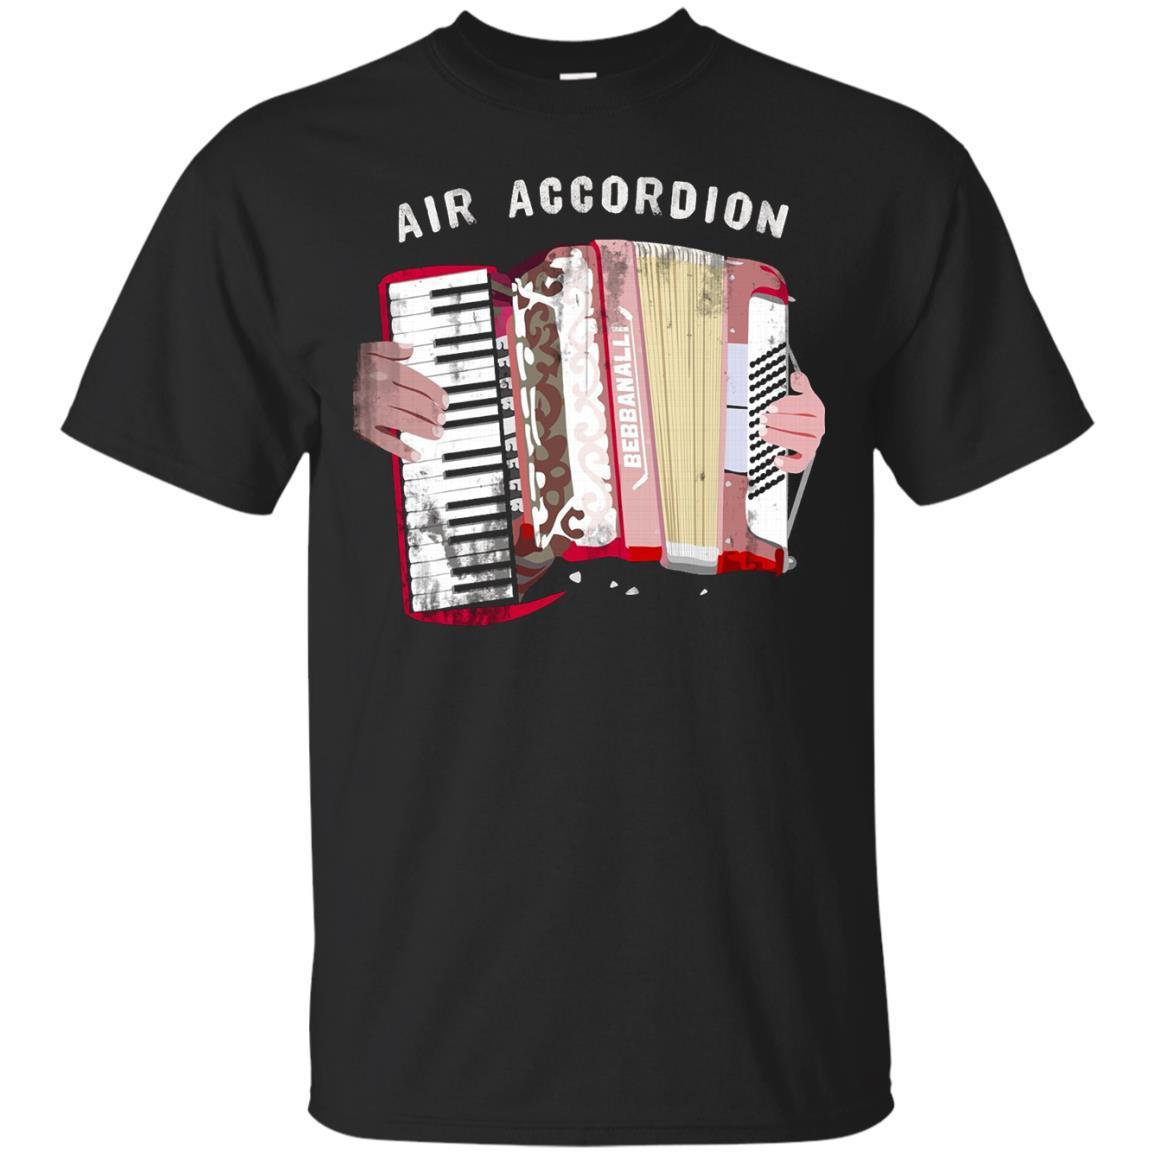 Air Accordion Original Shirt - T-Shirt